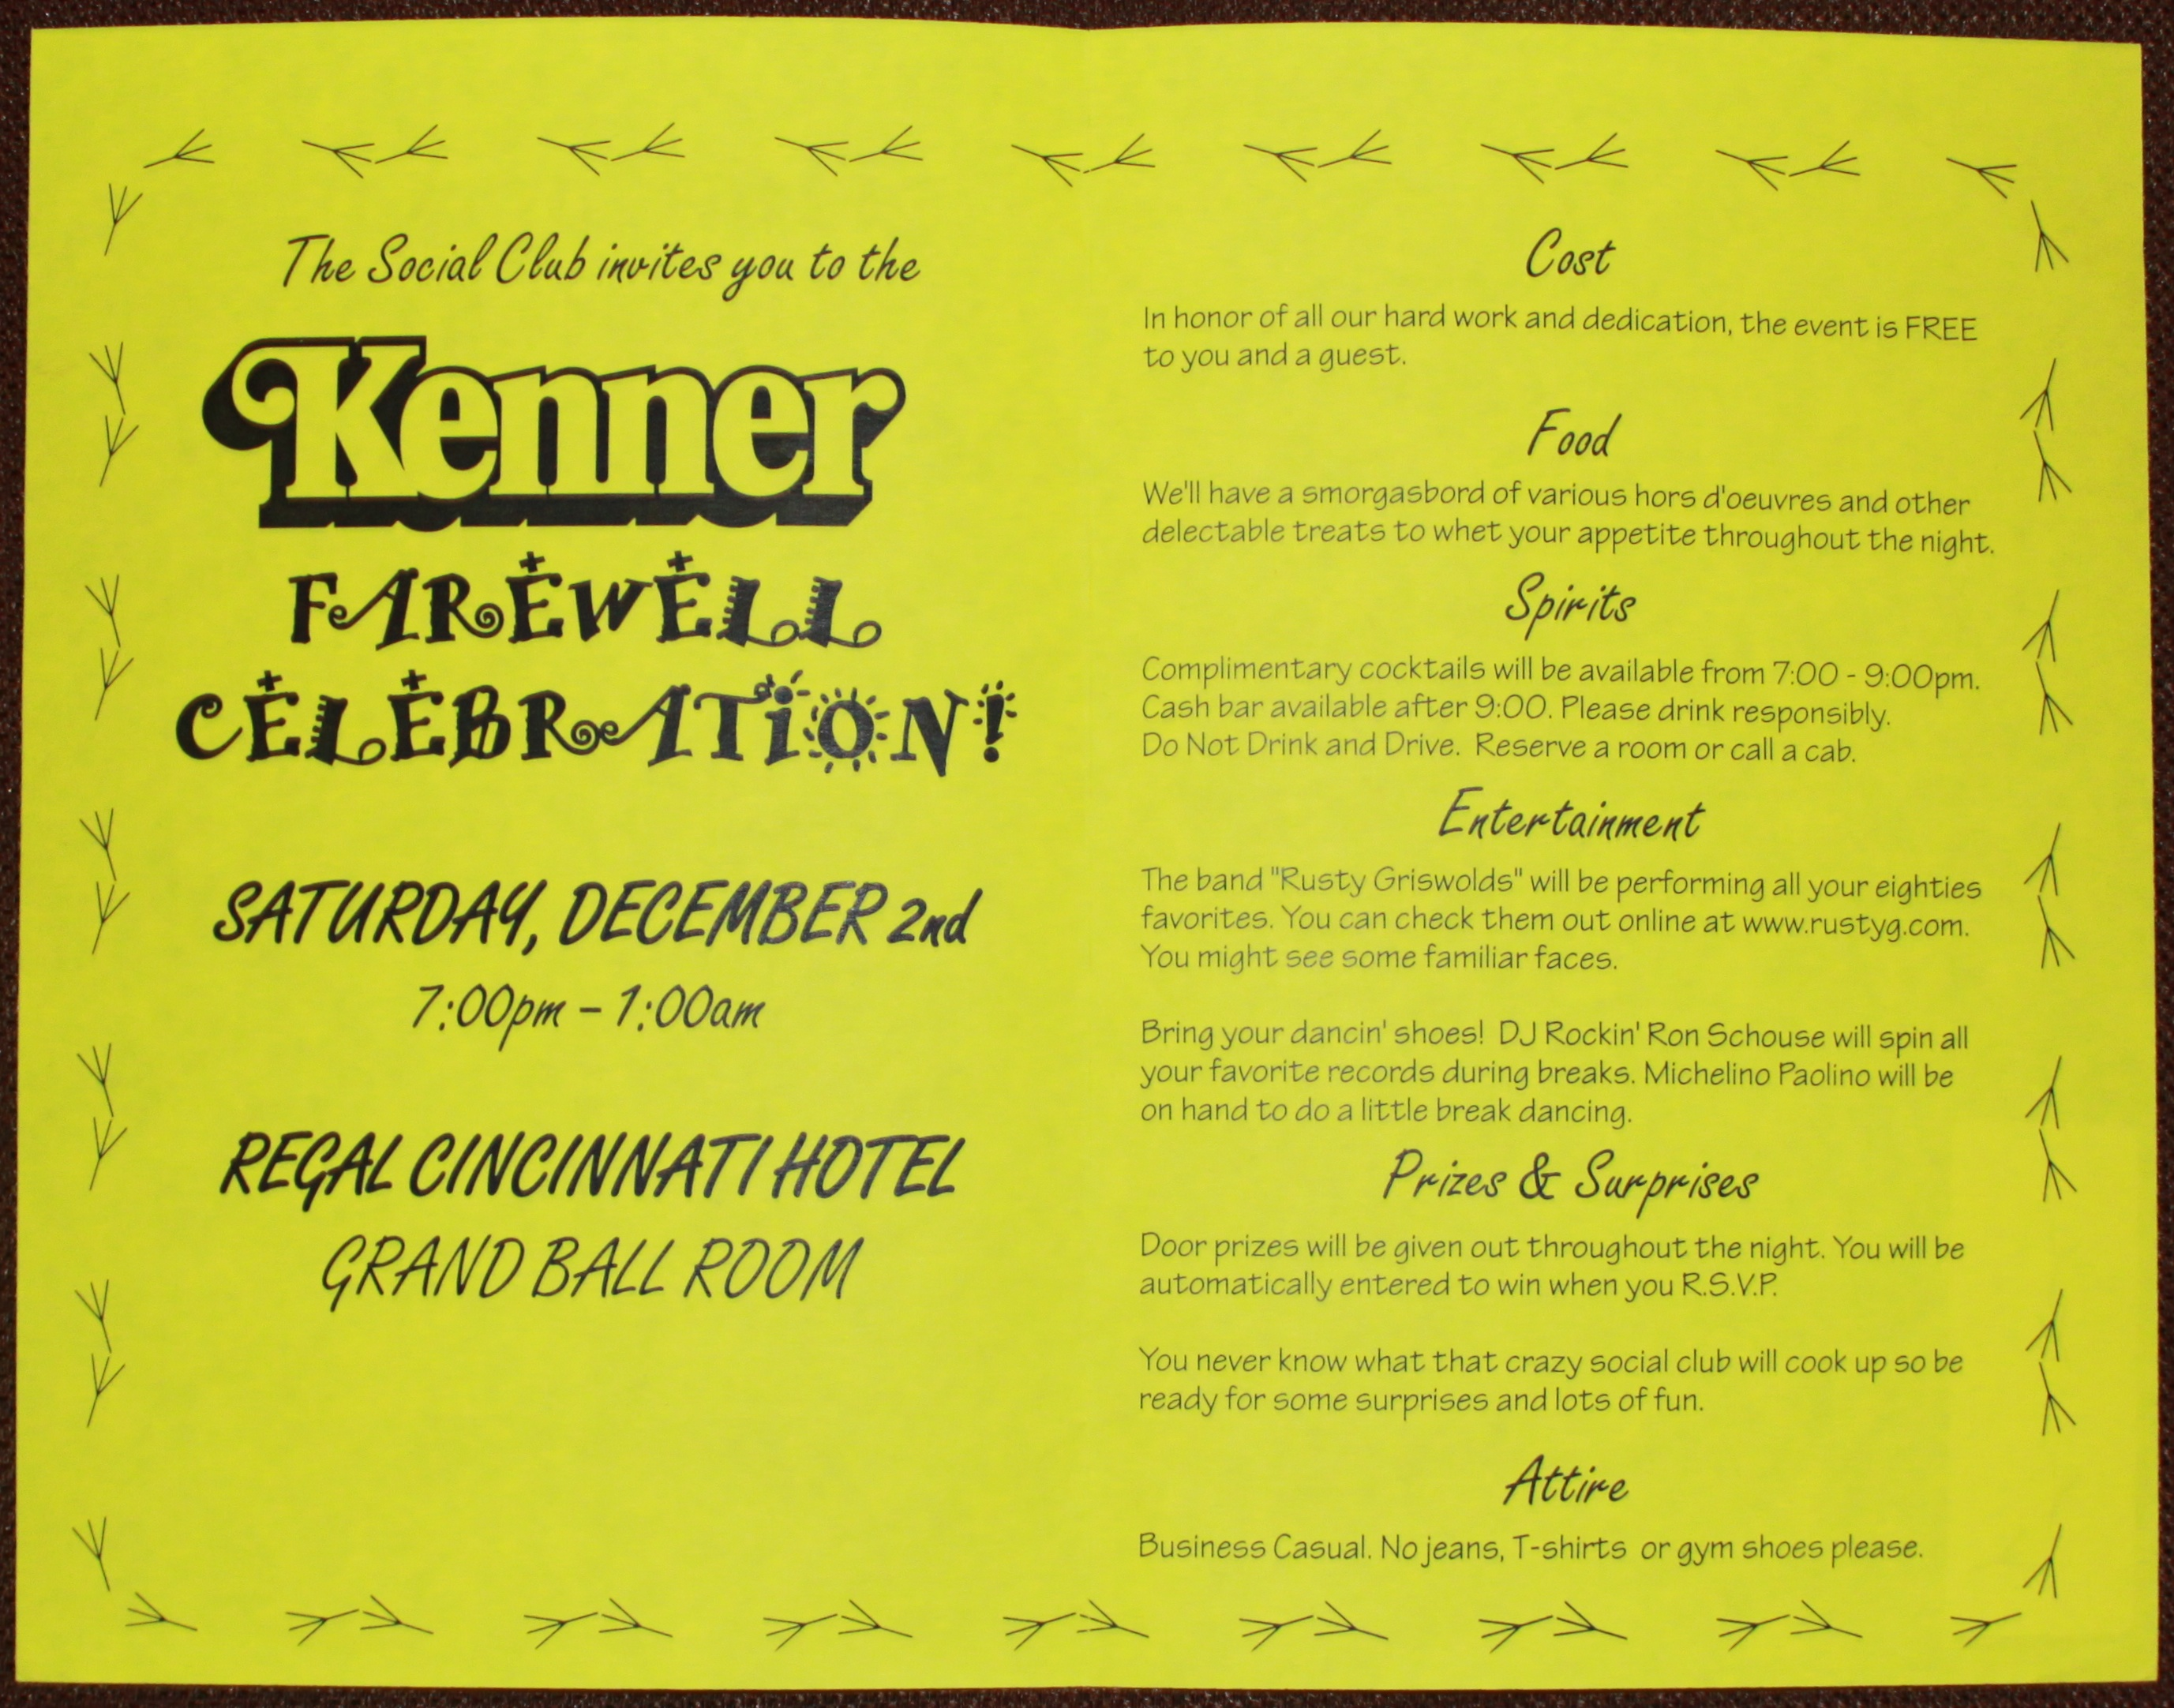 kenner farewell party invitation com kenner employee farewell invitation